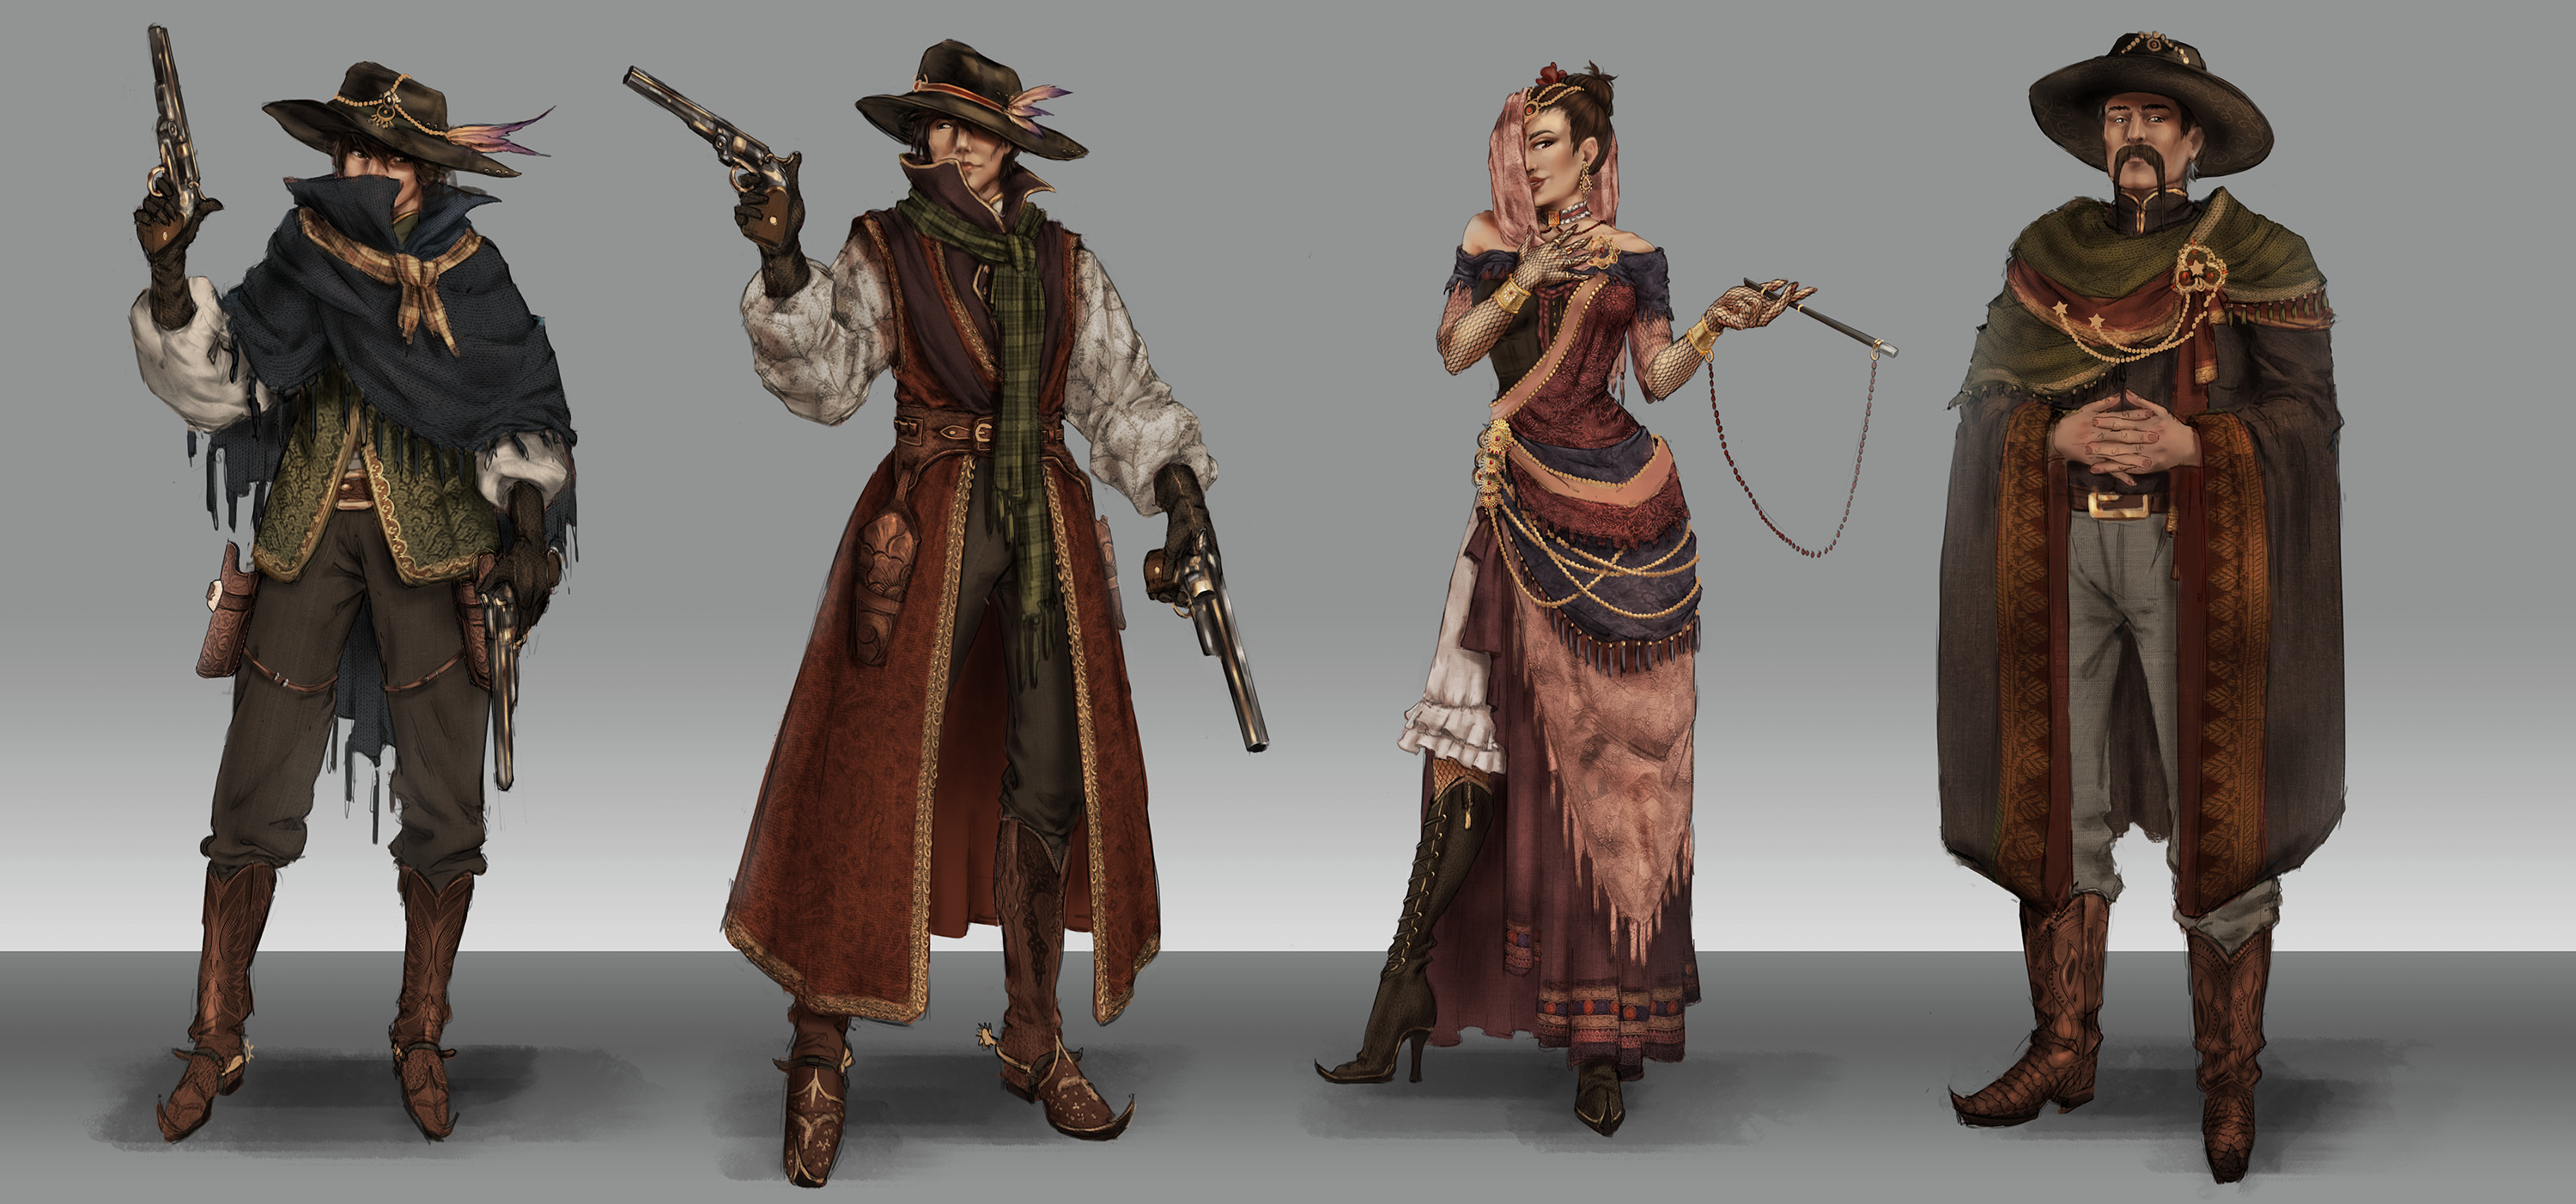 WIP concept of character concepts. 